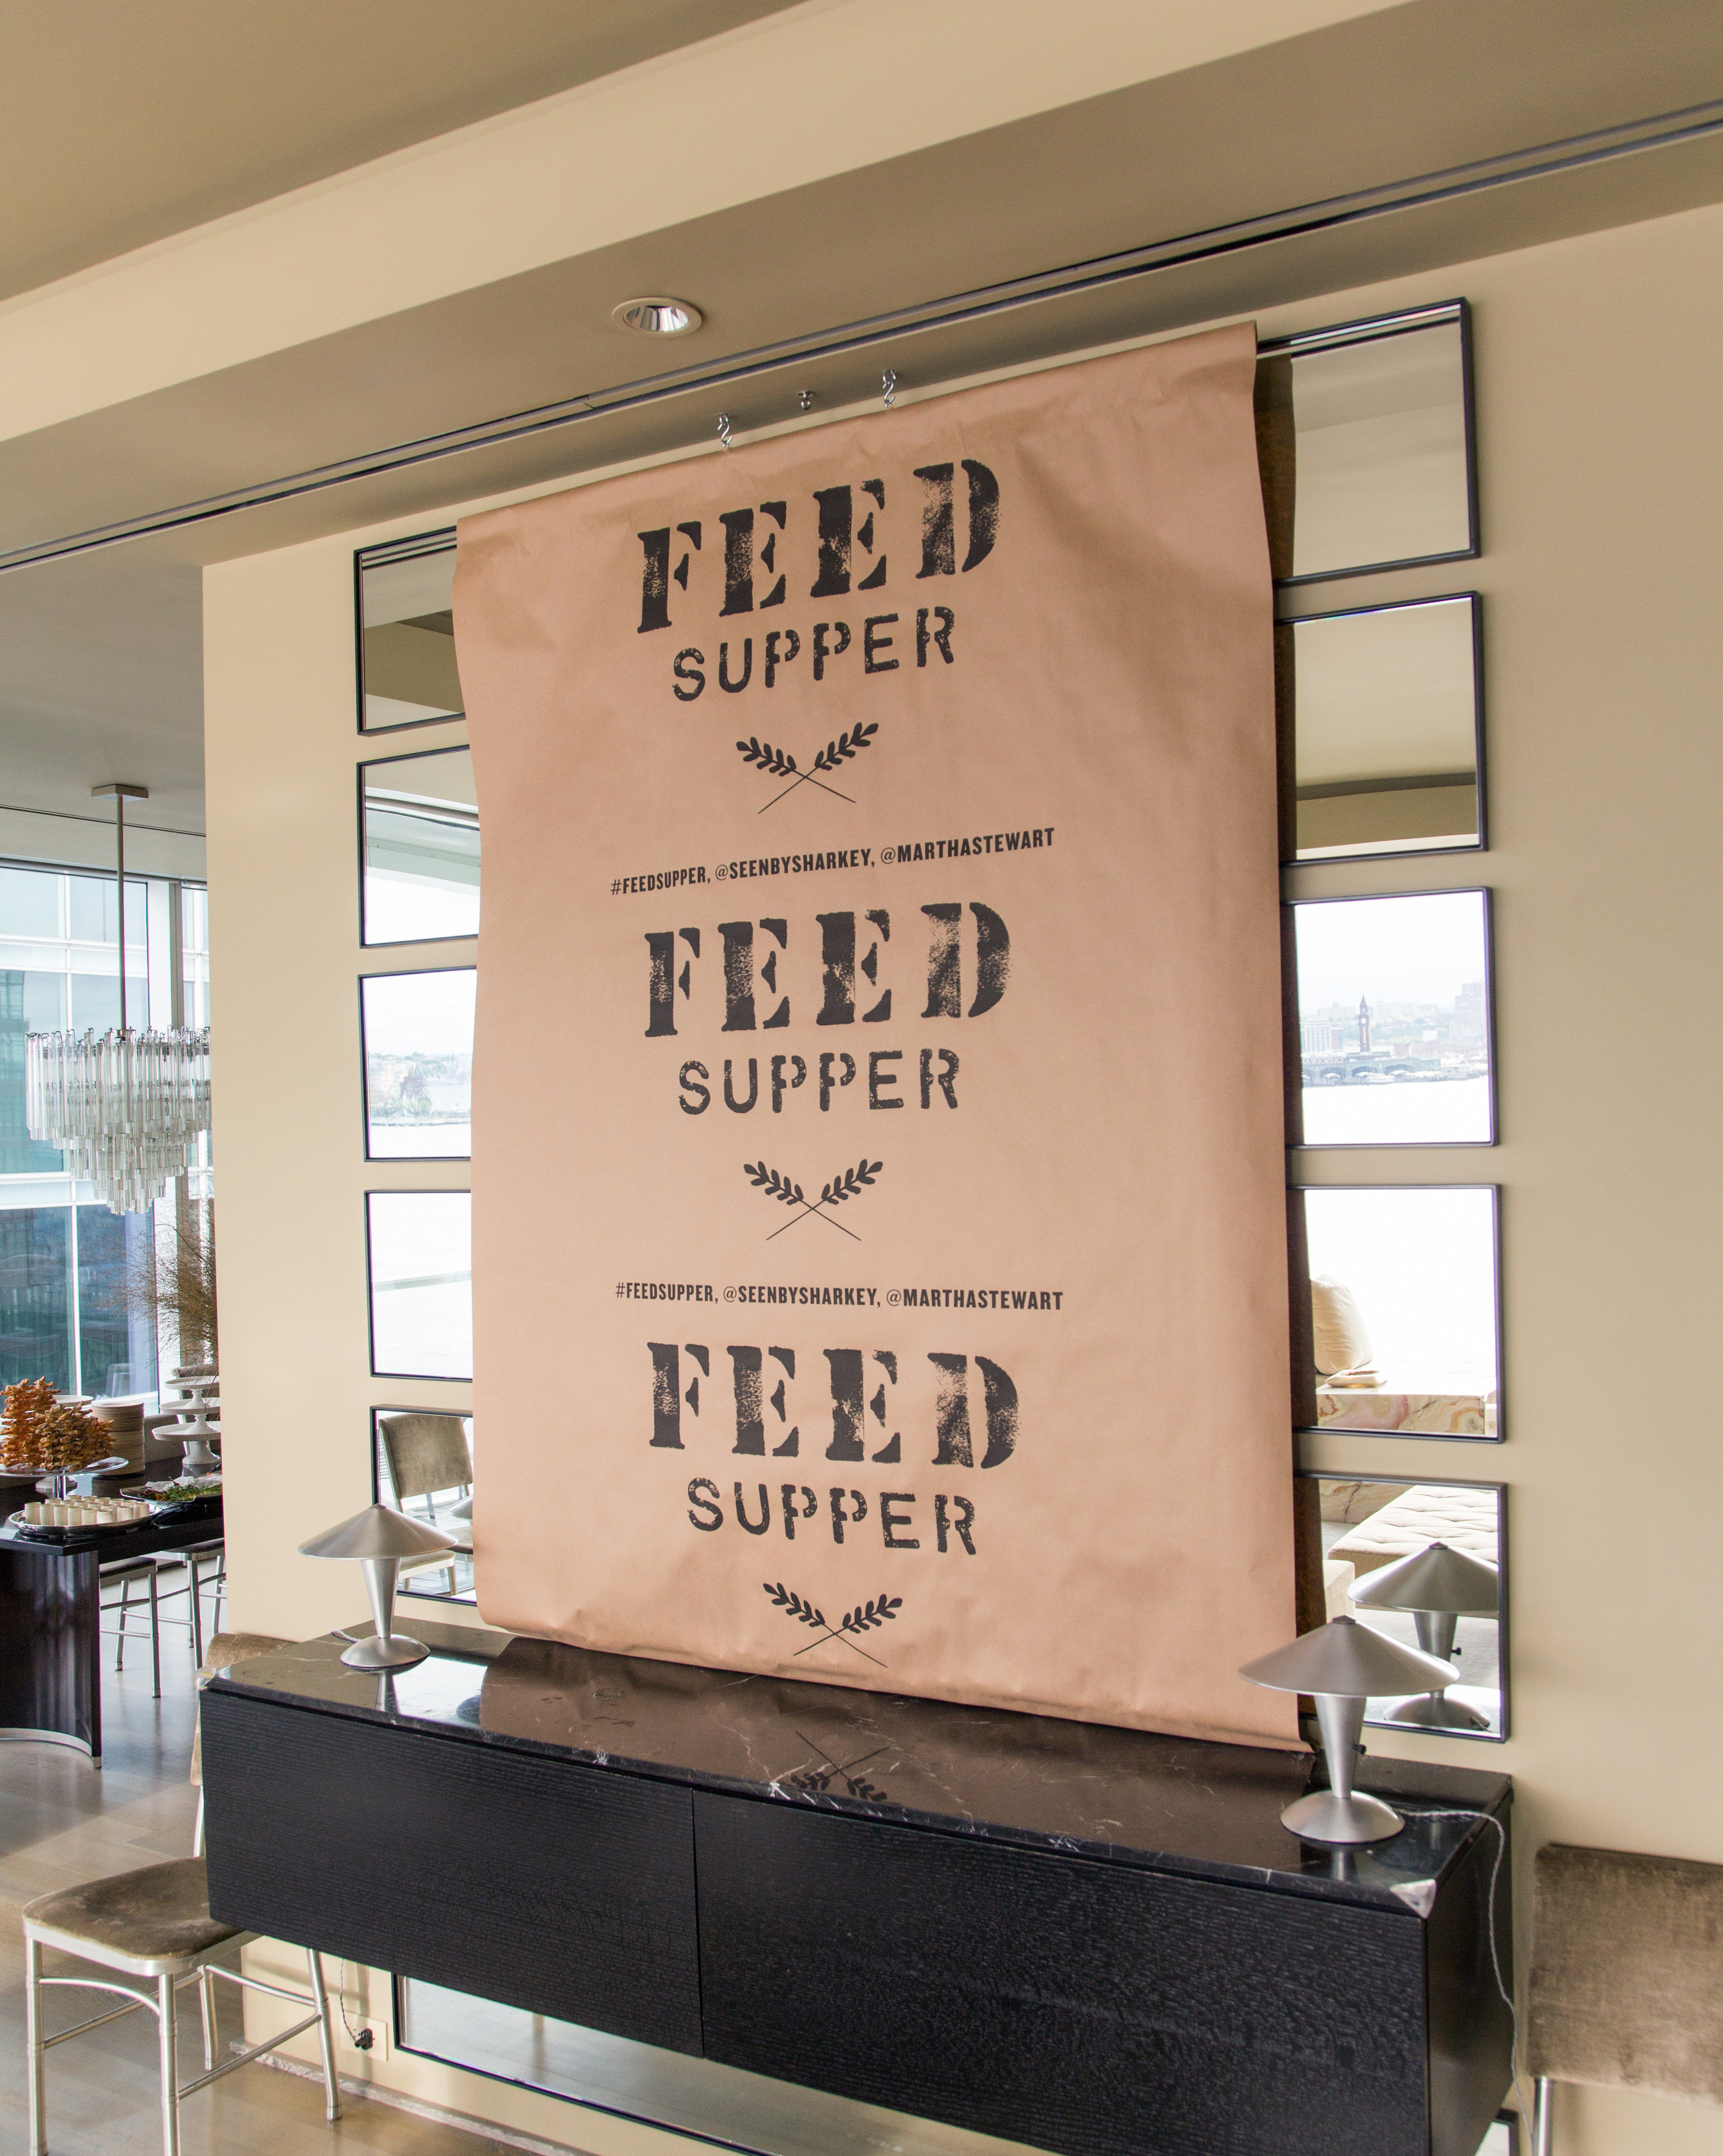 feed-supper-4-1015.jpg